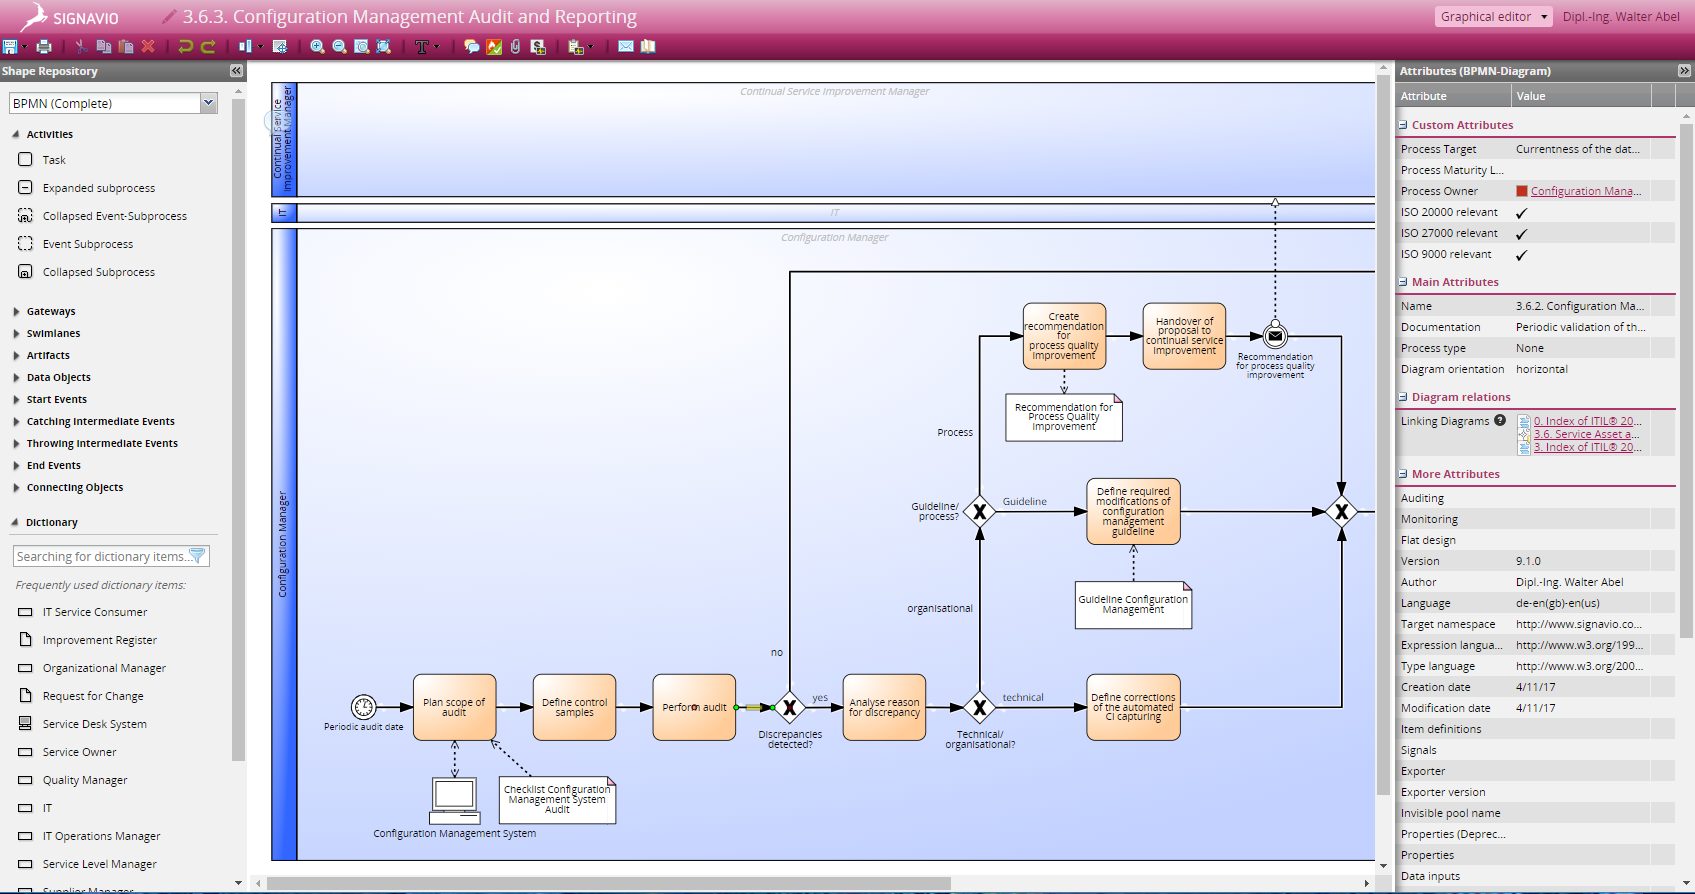 Signavio Process Manager Collaborative Web Based Management Flow Diagram Iso 9001 Modeling In Bpmn 20